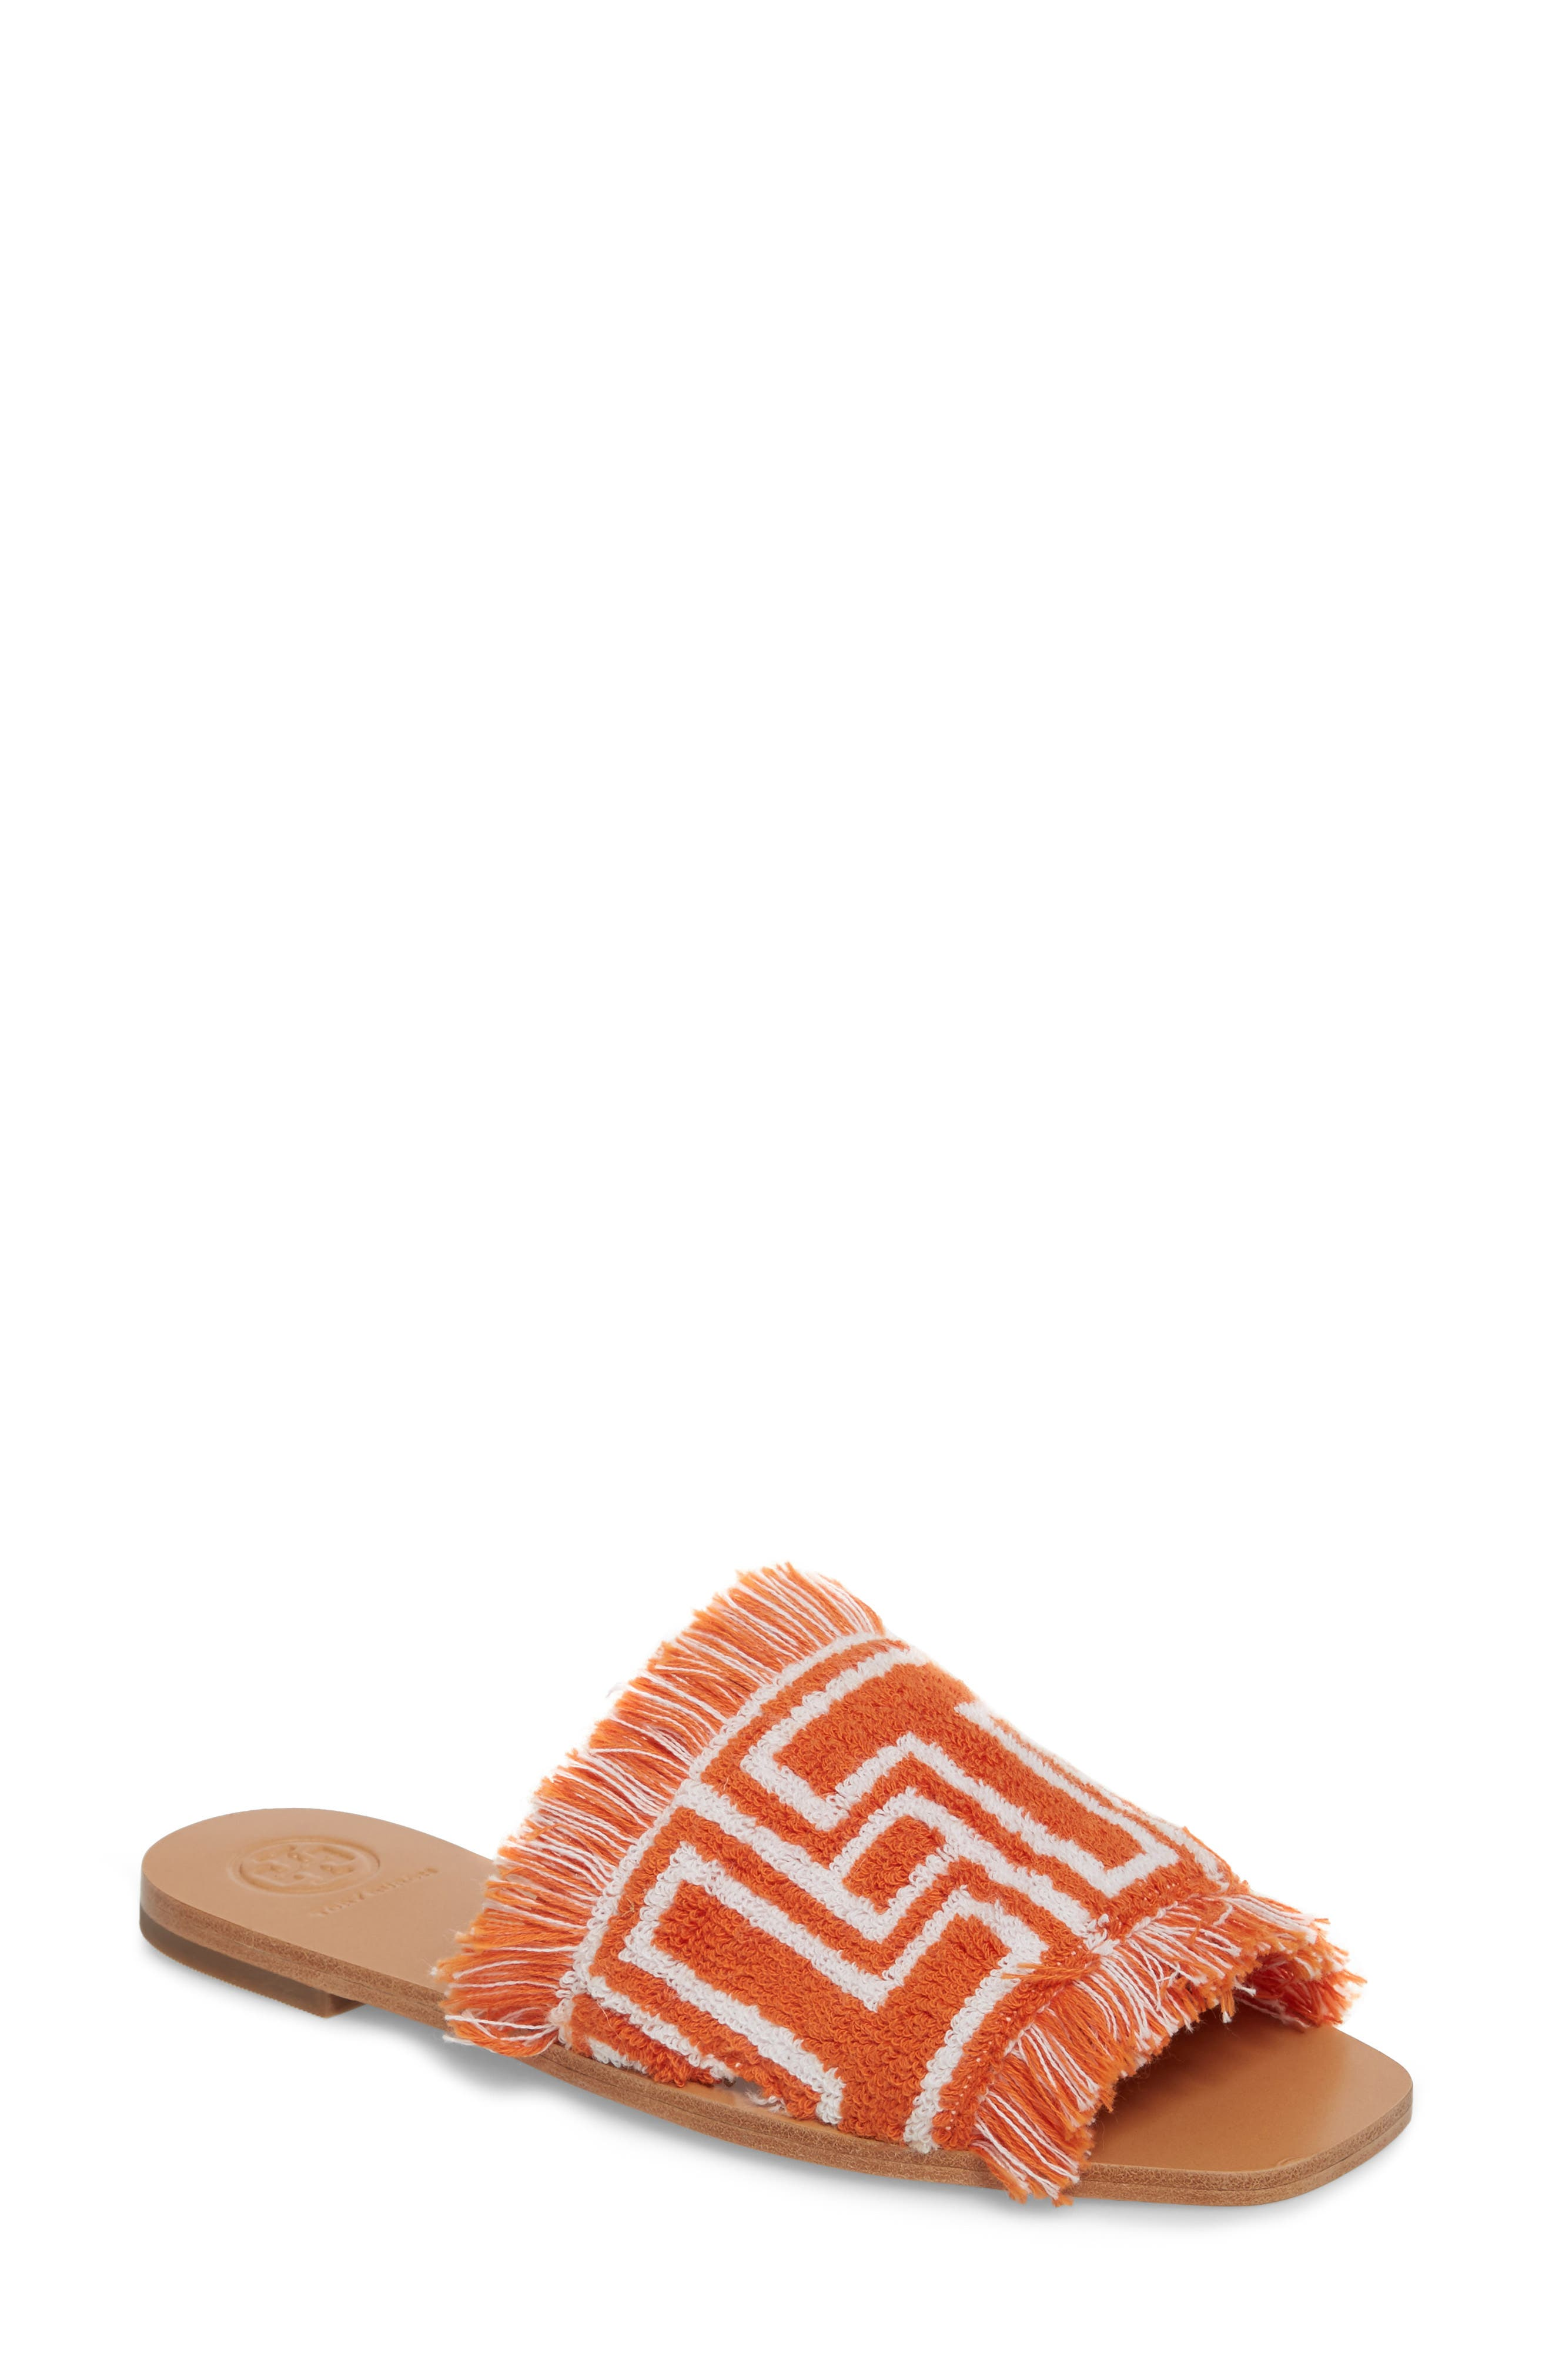 Tory Burch T-Tile Slide Sandal (Women)